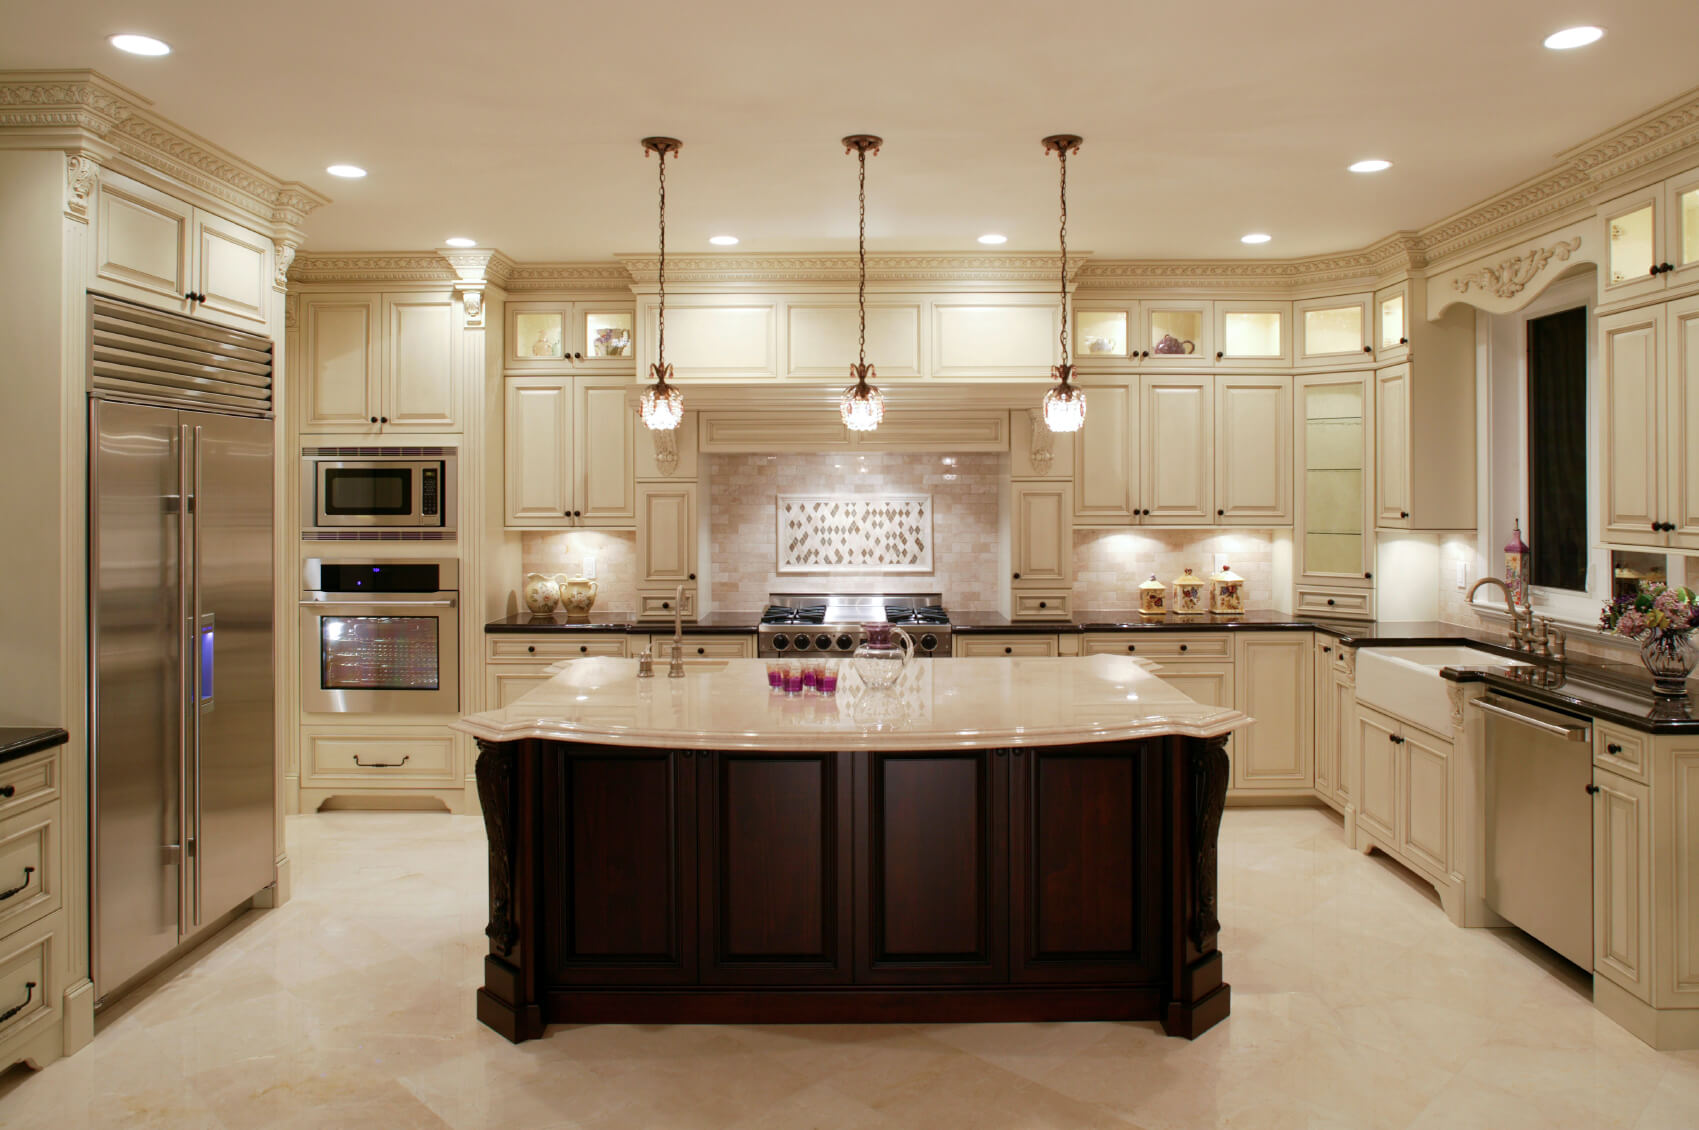 U Shaped Kitchen Plans 41 Luxury Ushaped Kitchen Designs & Layouts Photos